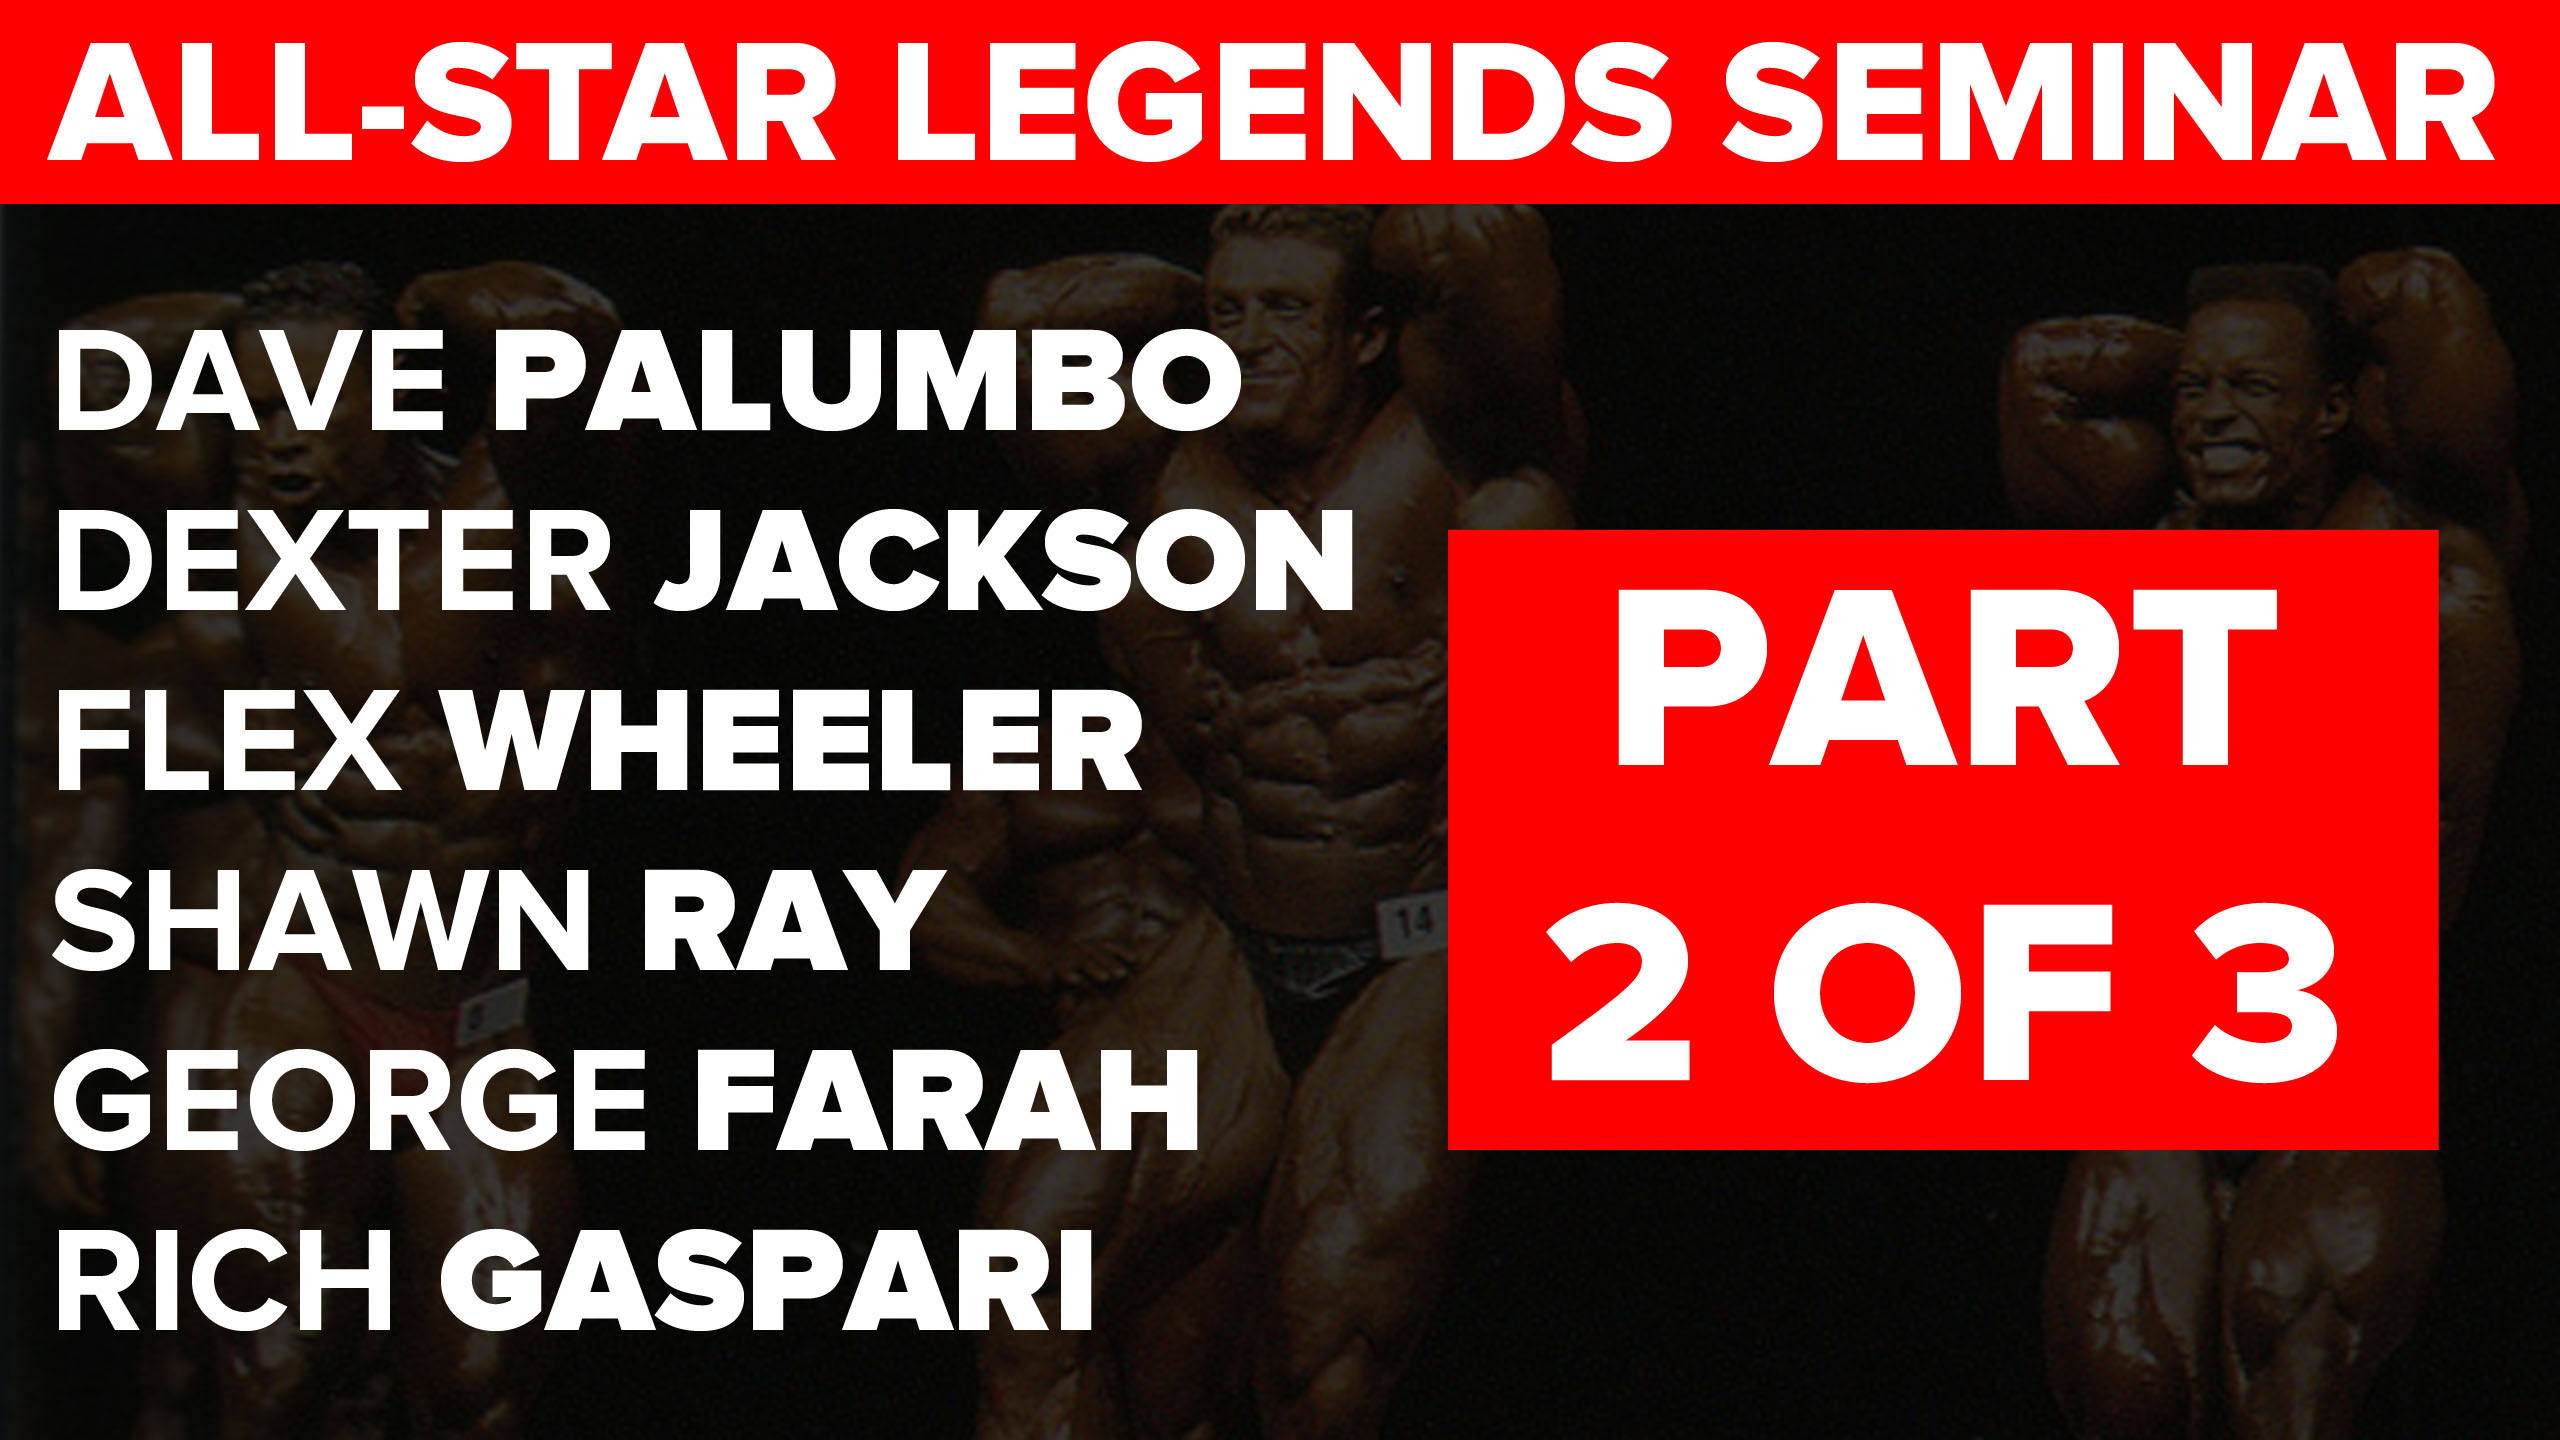 legends seminar part 2